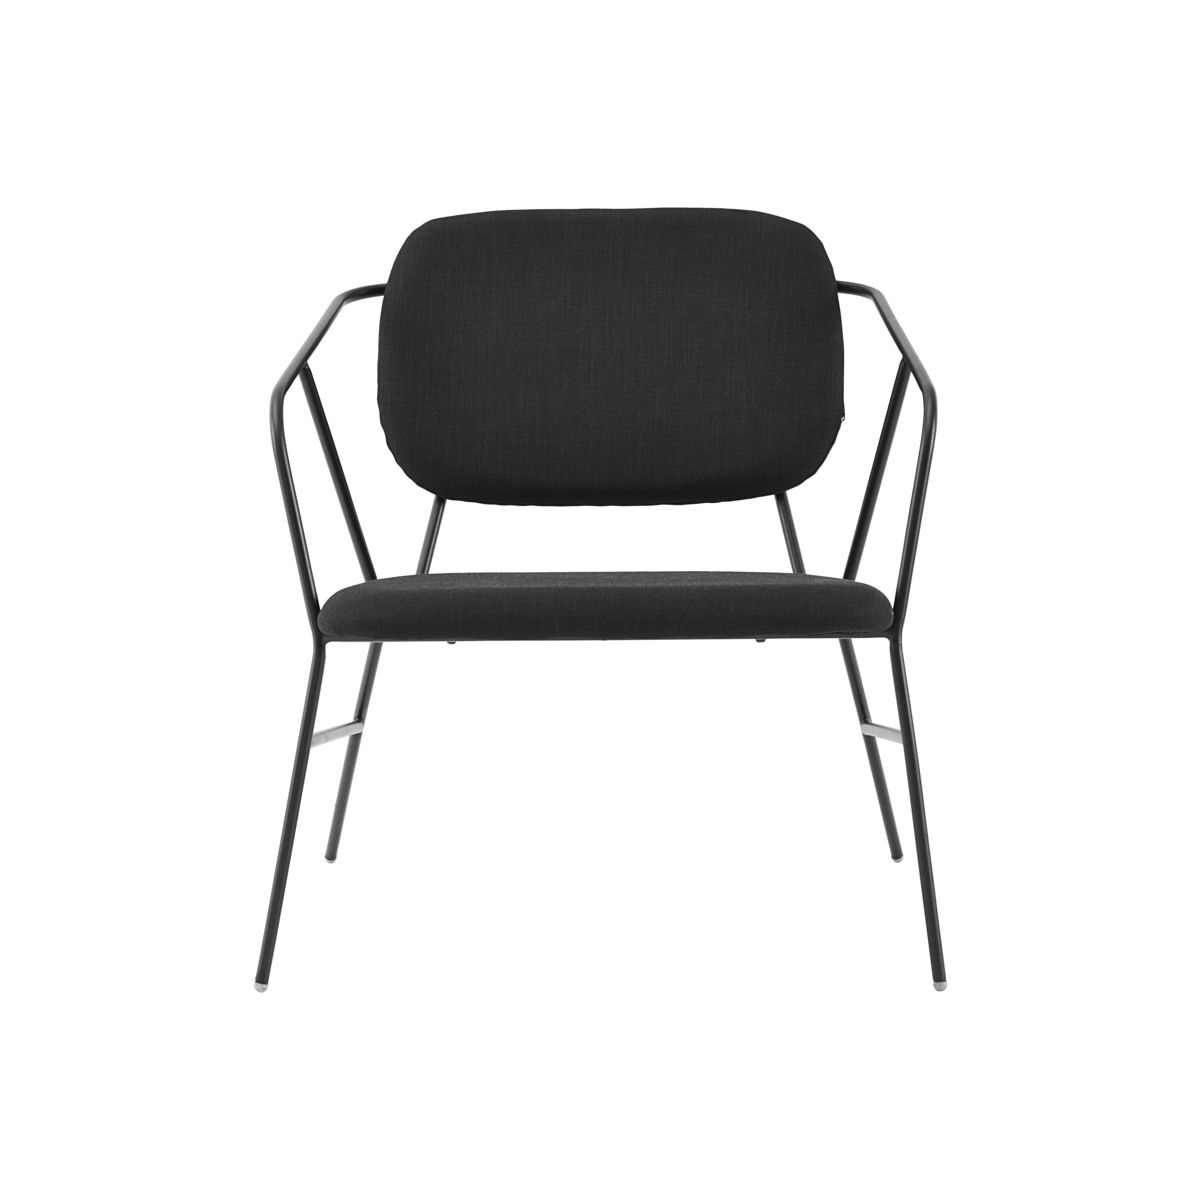 Lounge chair KLEVER black metall, House Doctor